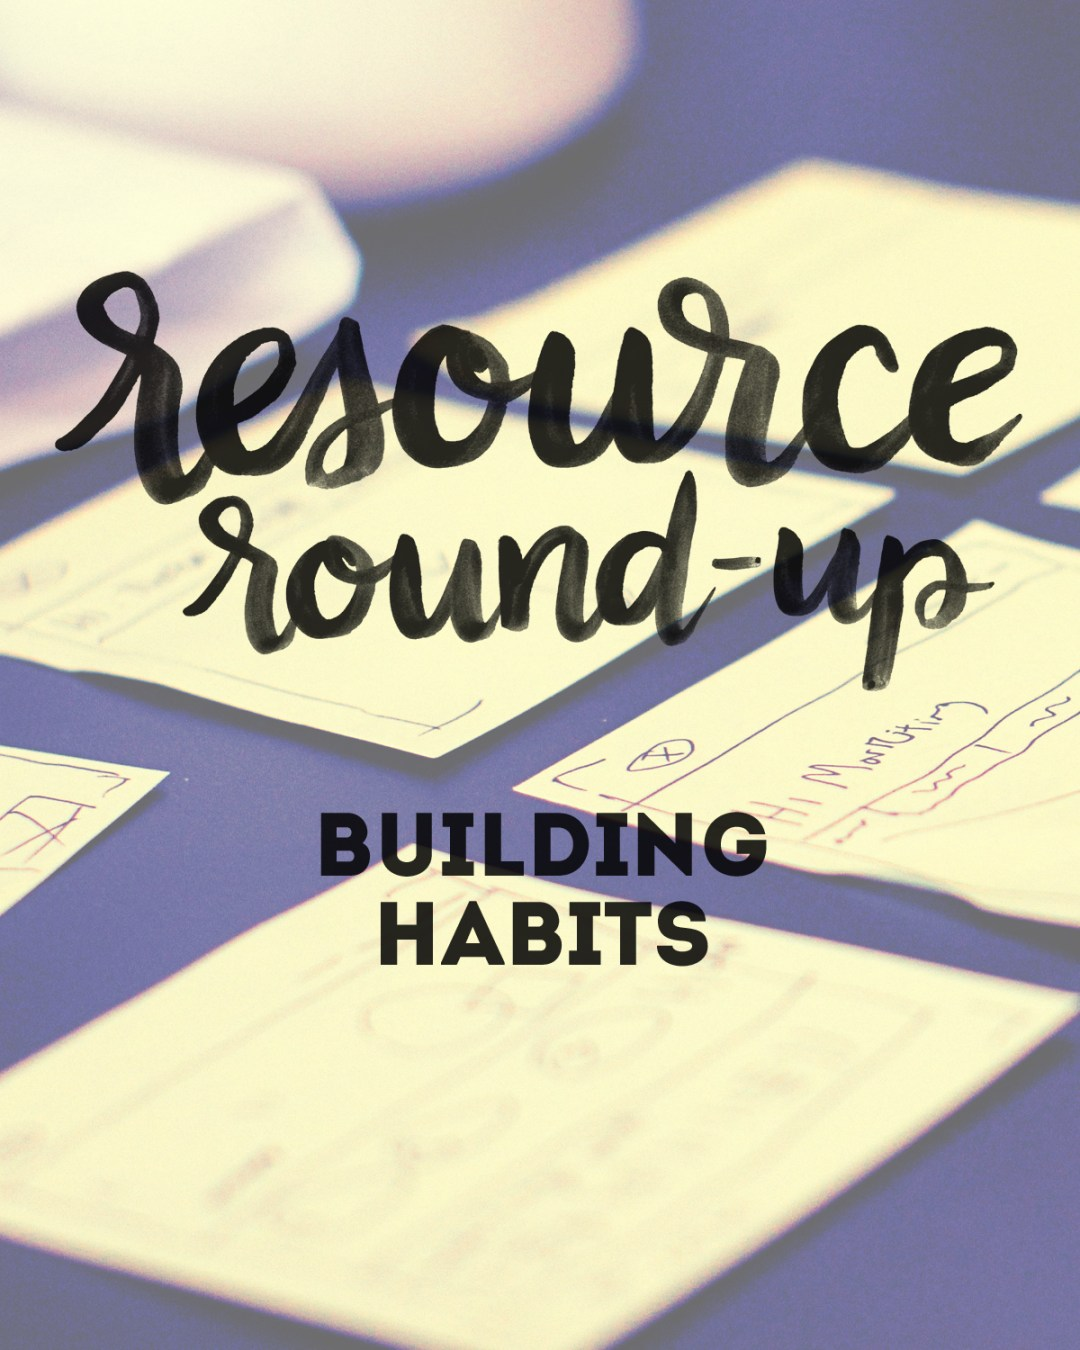 Resources for Building Habits - www.randomolive.com